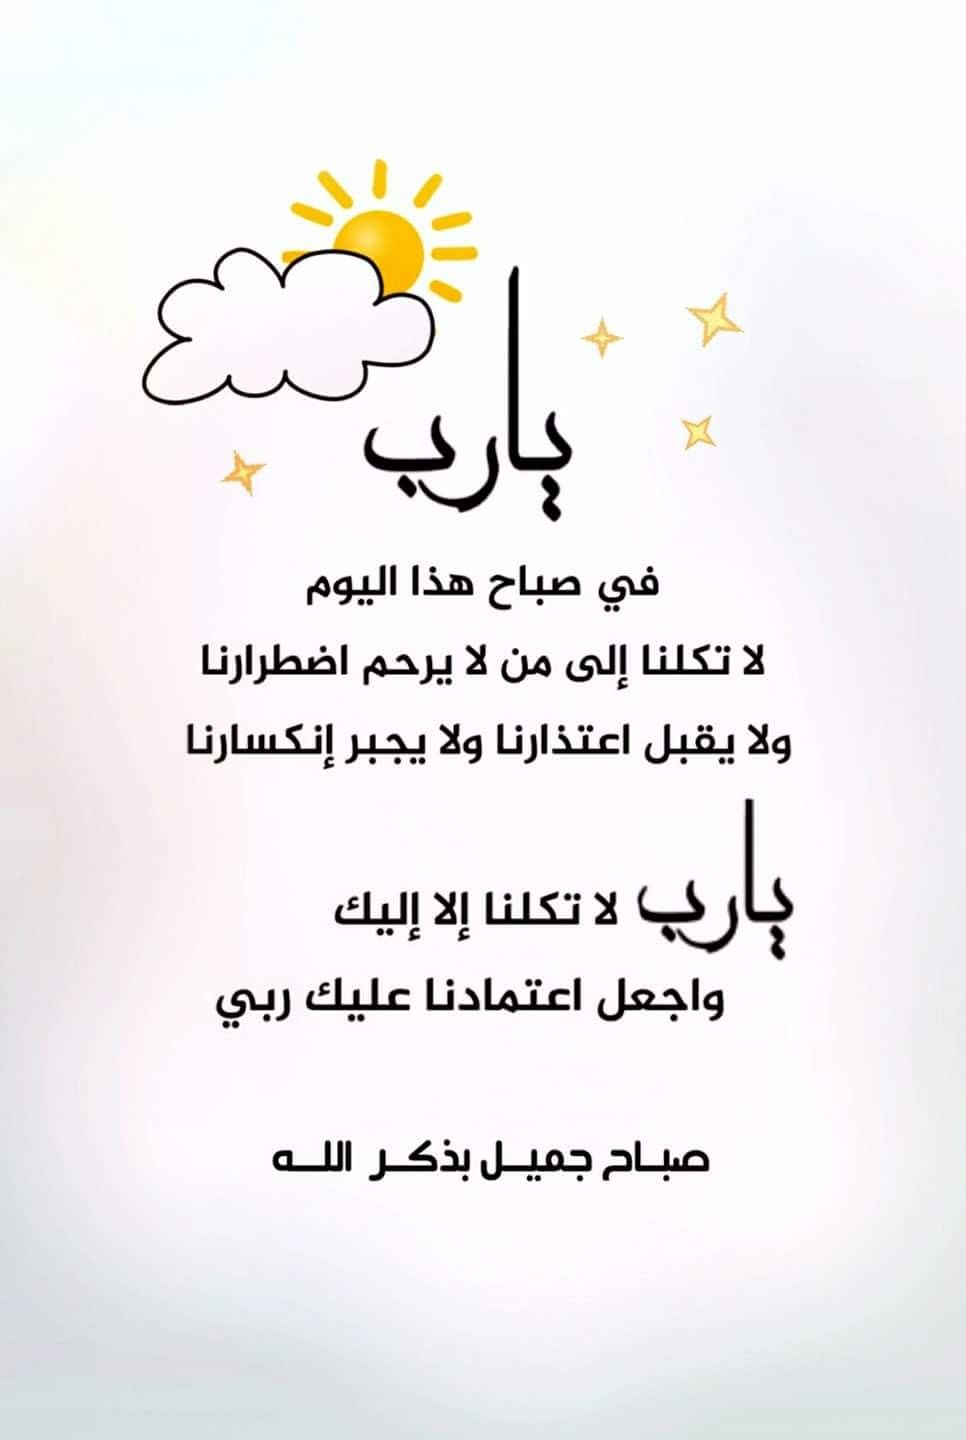 Pin By Mahnaz On دعاء I Miss My Dad Arabic Quotes Miss My Dad